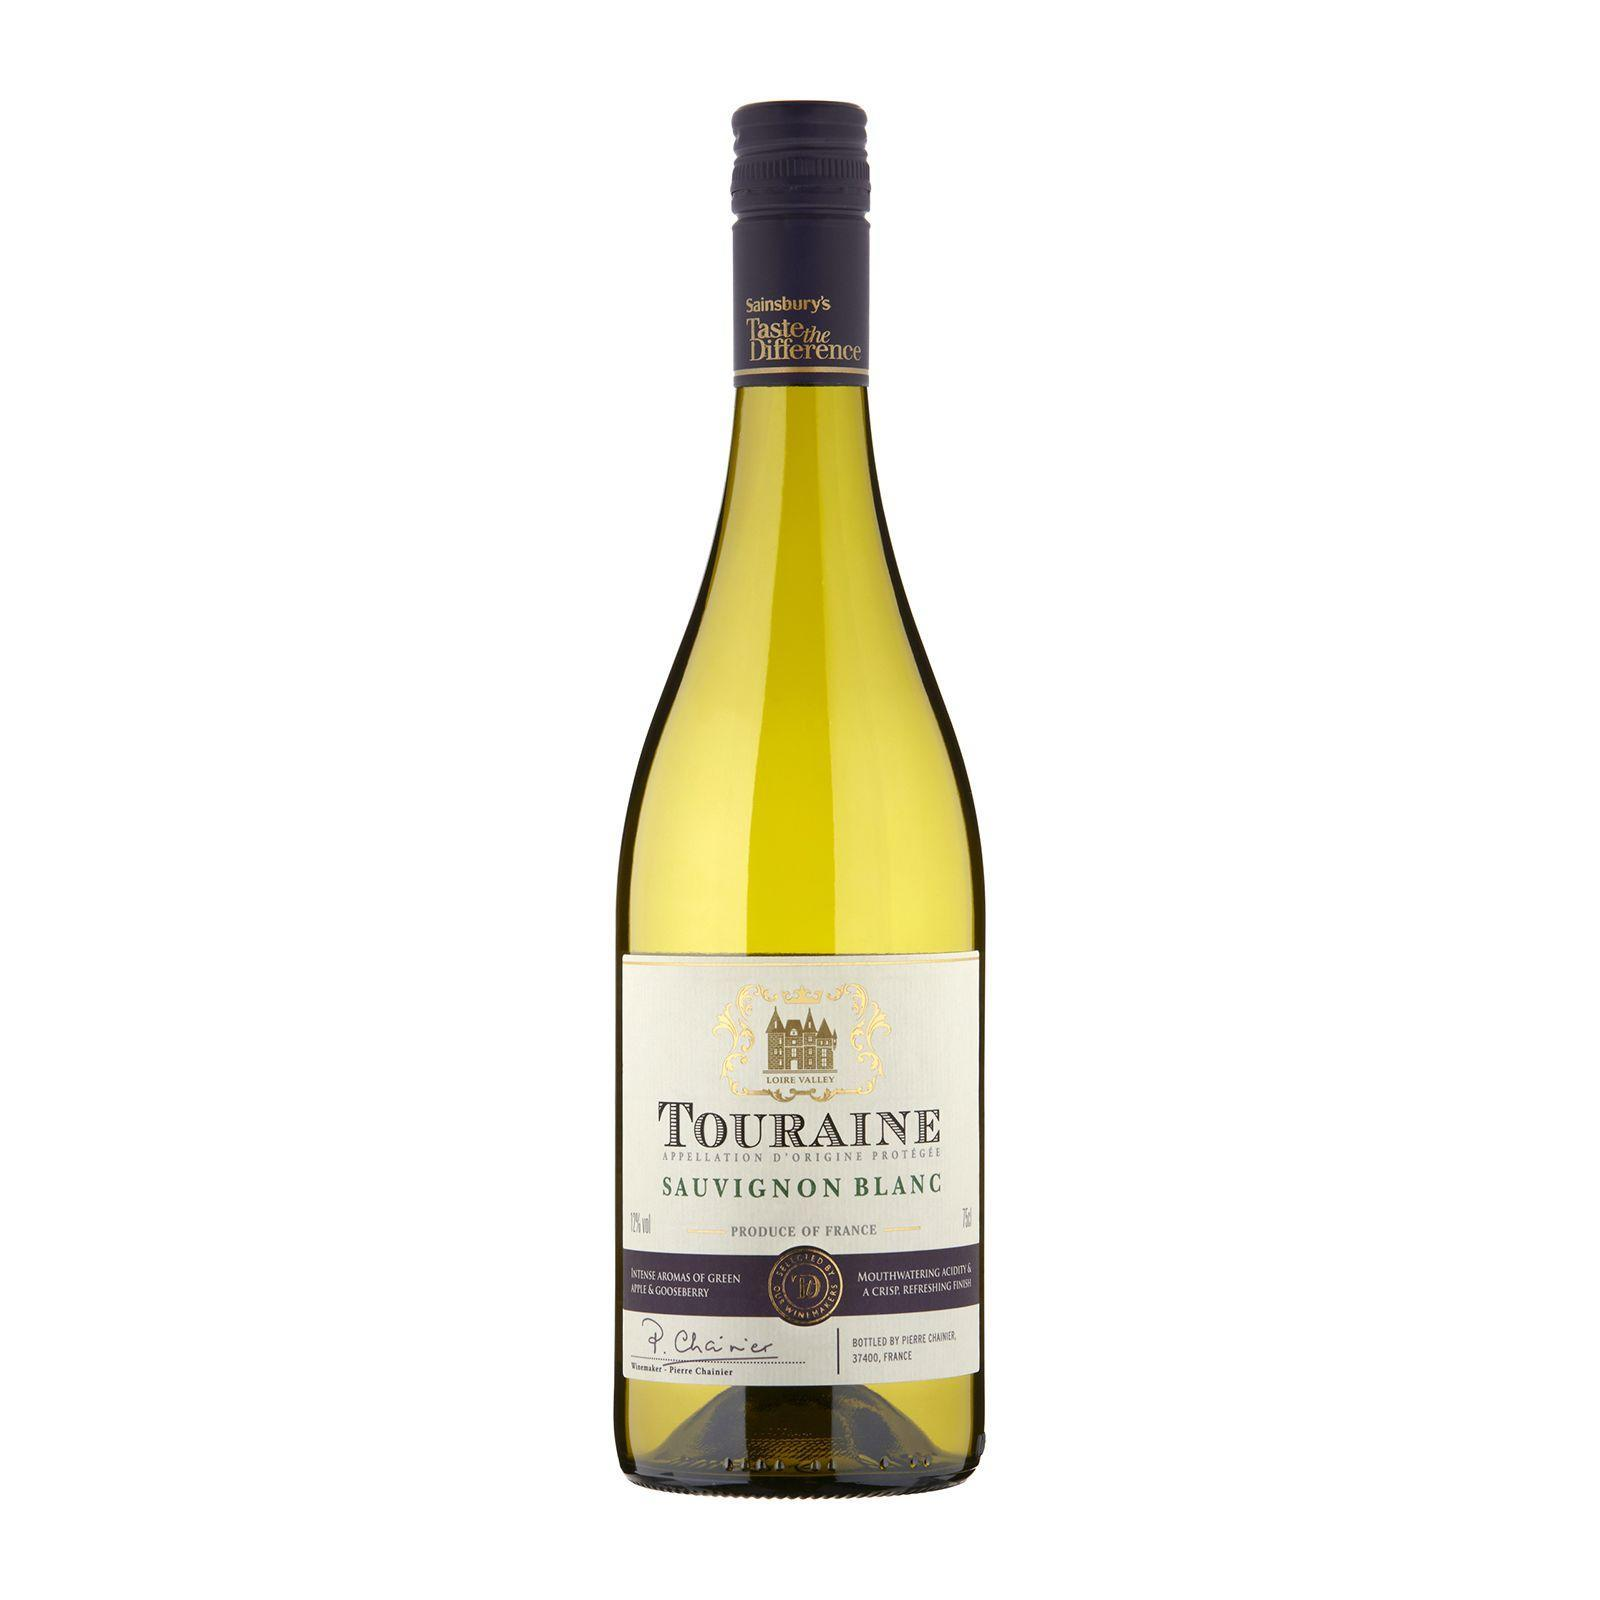 Sainsbury's Taste The Difference Touraine Sauvignon Blanc White Wine